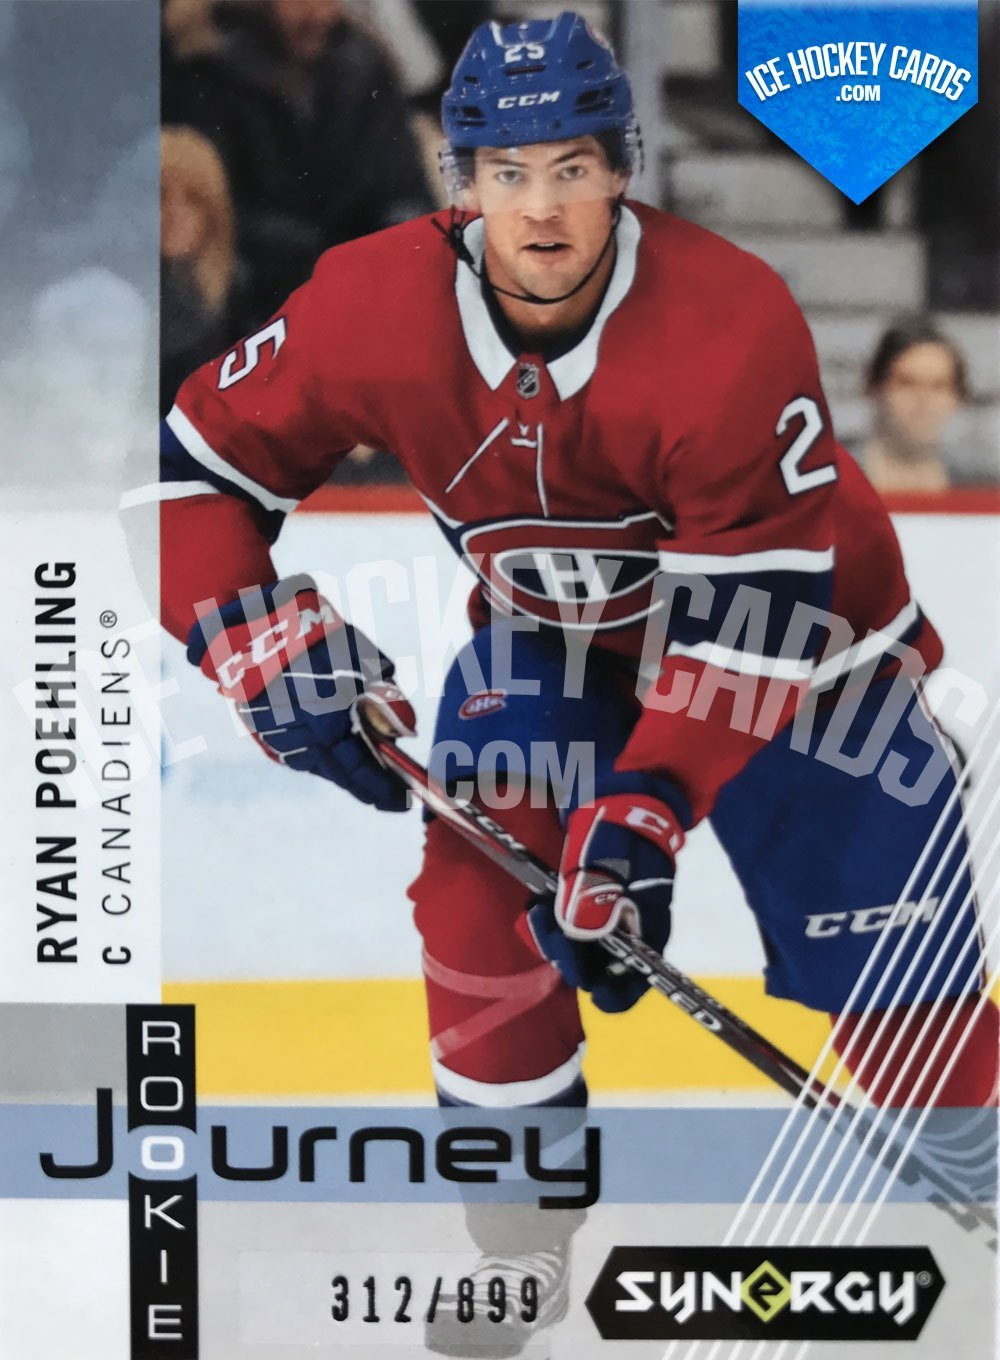 Upper Deck - Synergy-19-20 - Ryan Poehling Rookie Journey